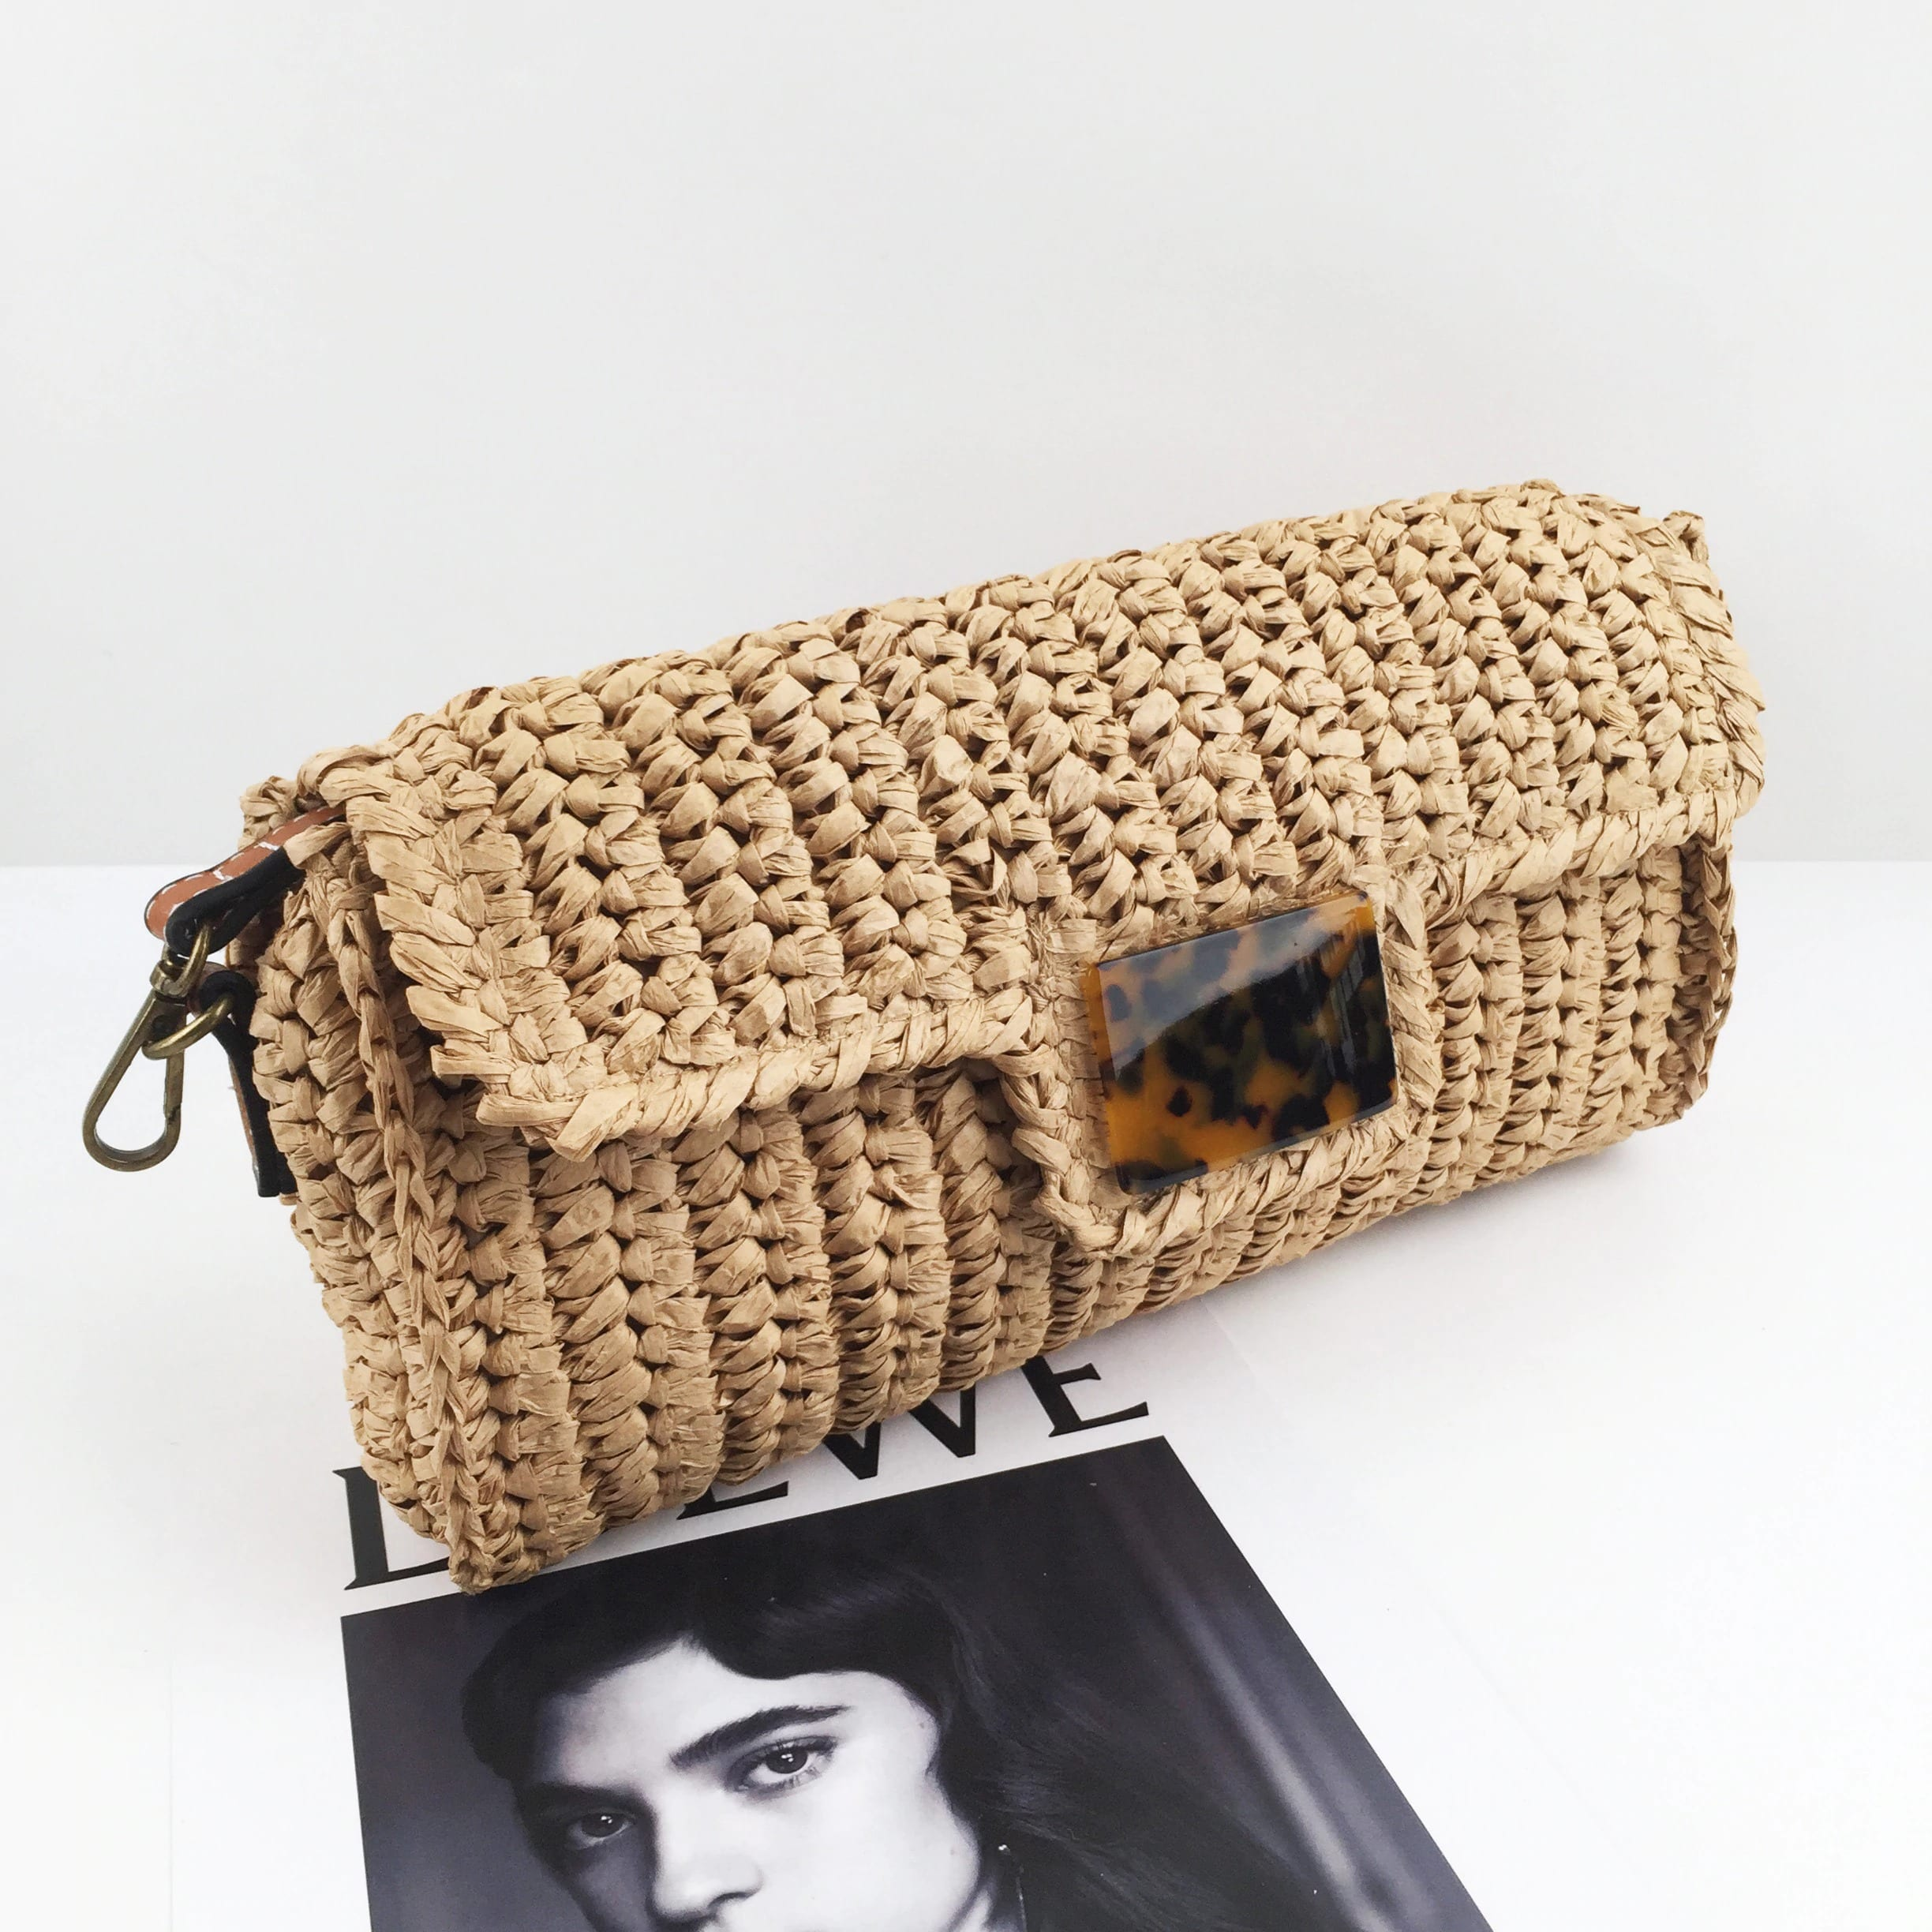 How white woven bag suggest